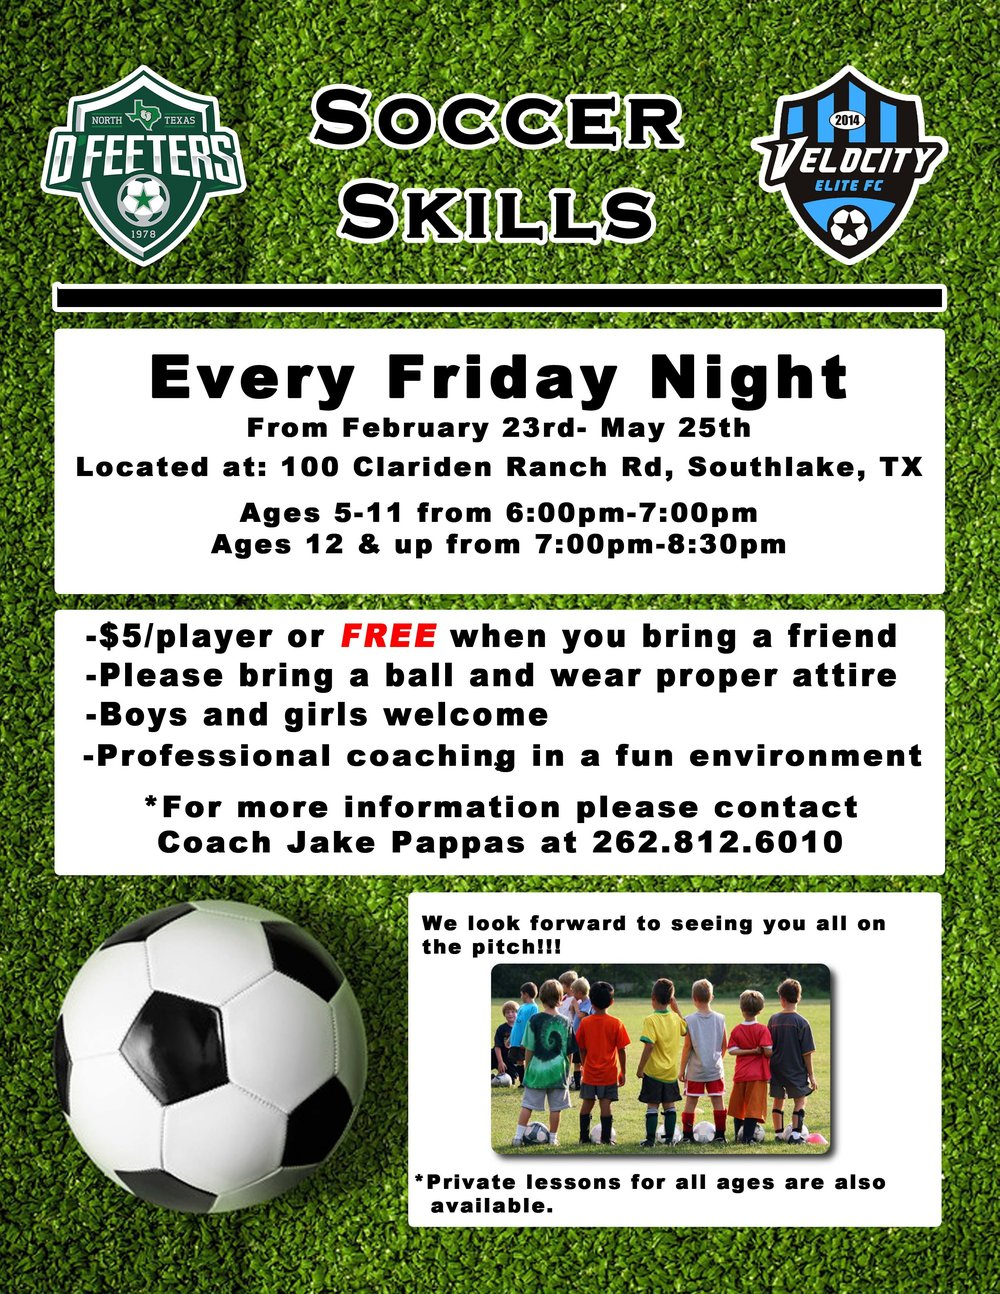 Soccer Skills Flyer small.jpg